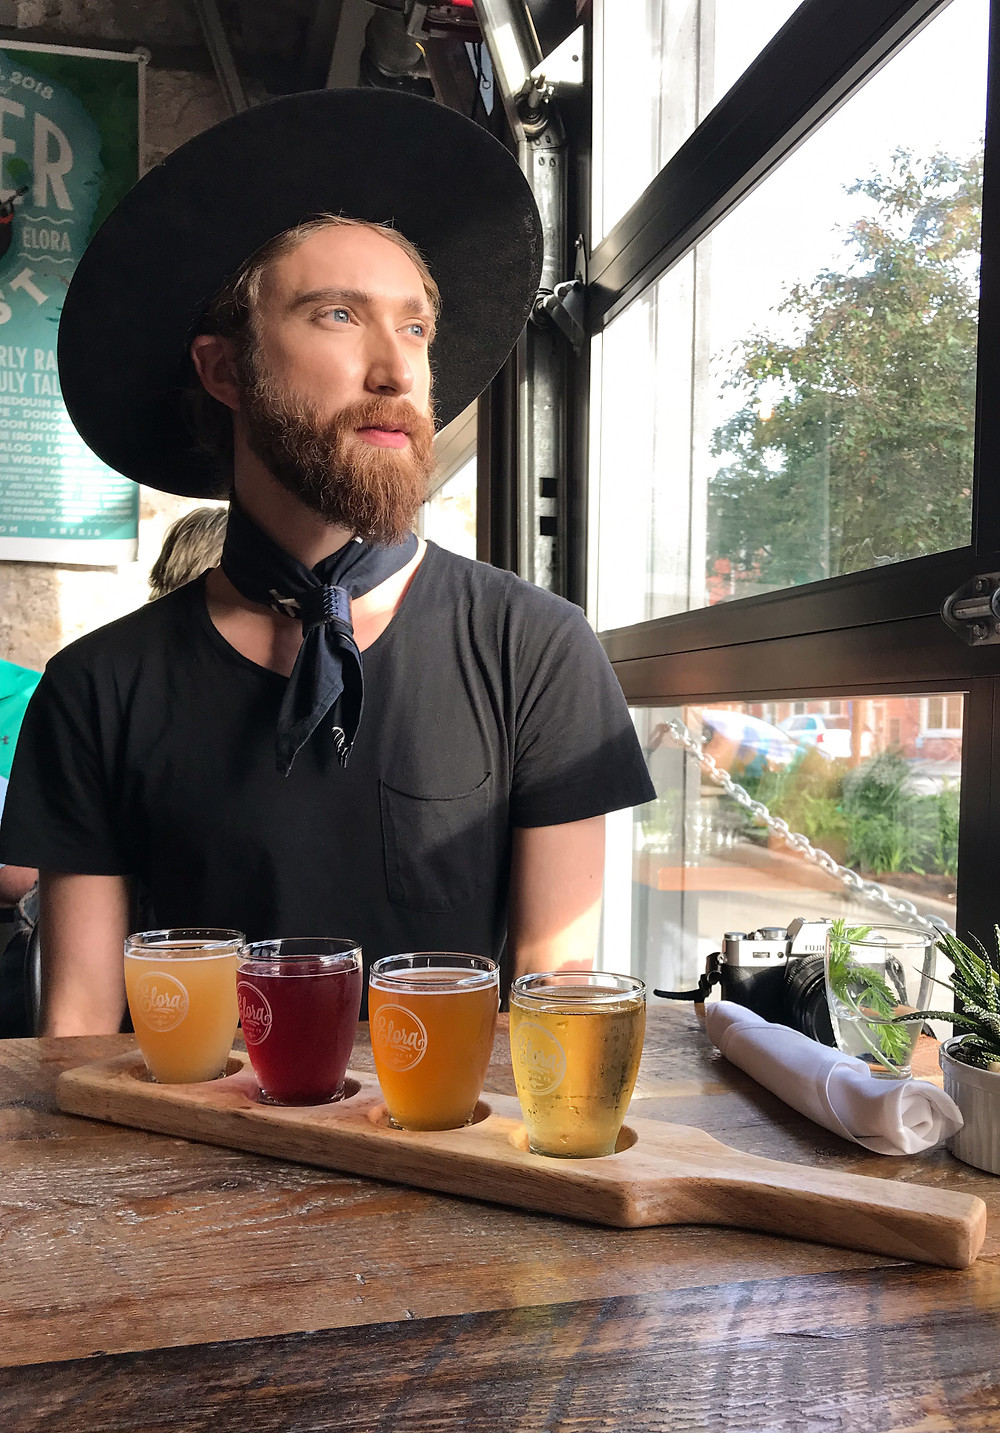 elora-brewing-company-review